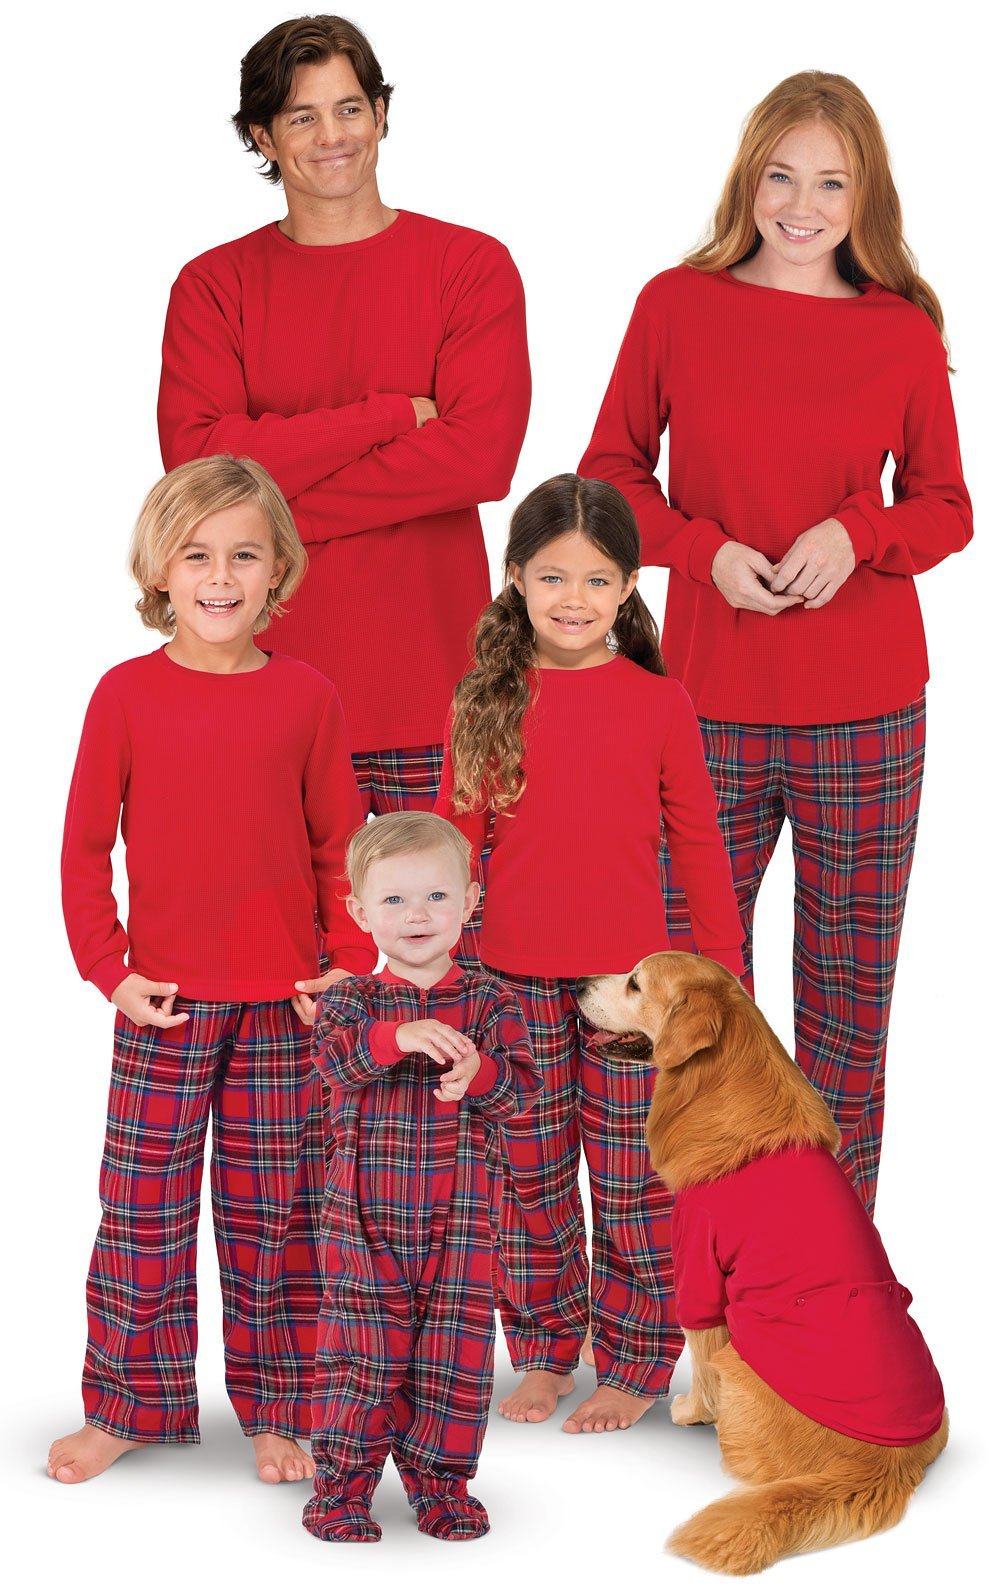 Family Christmas Pajamas With Dog.Matching Christmas Pajamas For The Whole Family